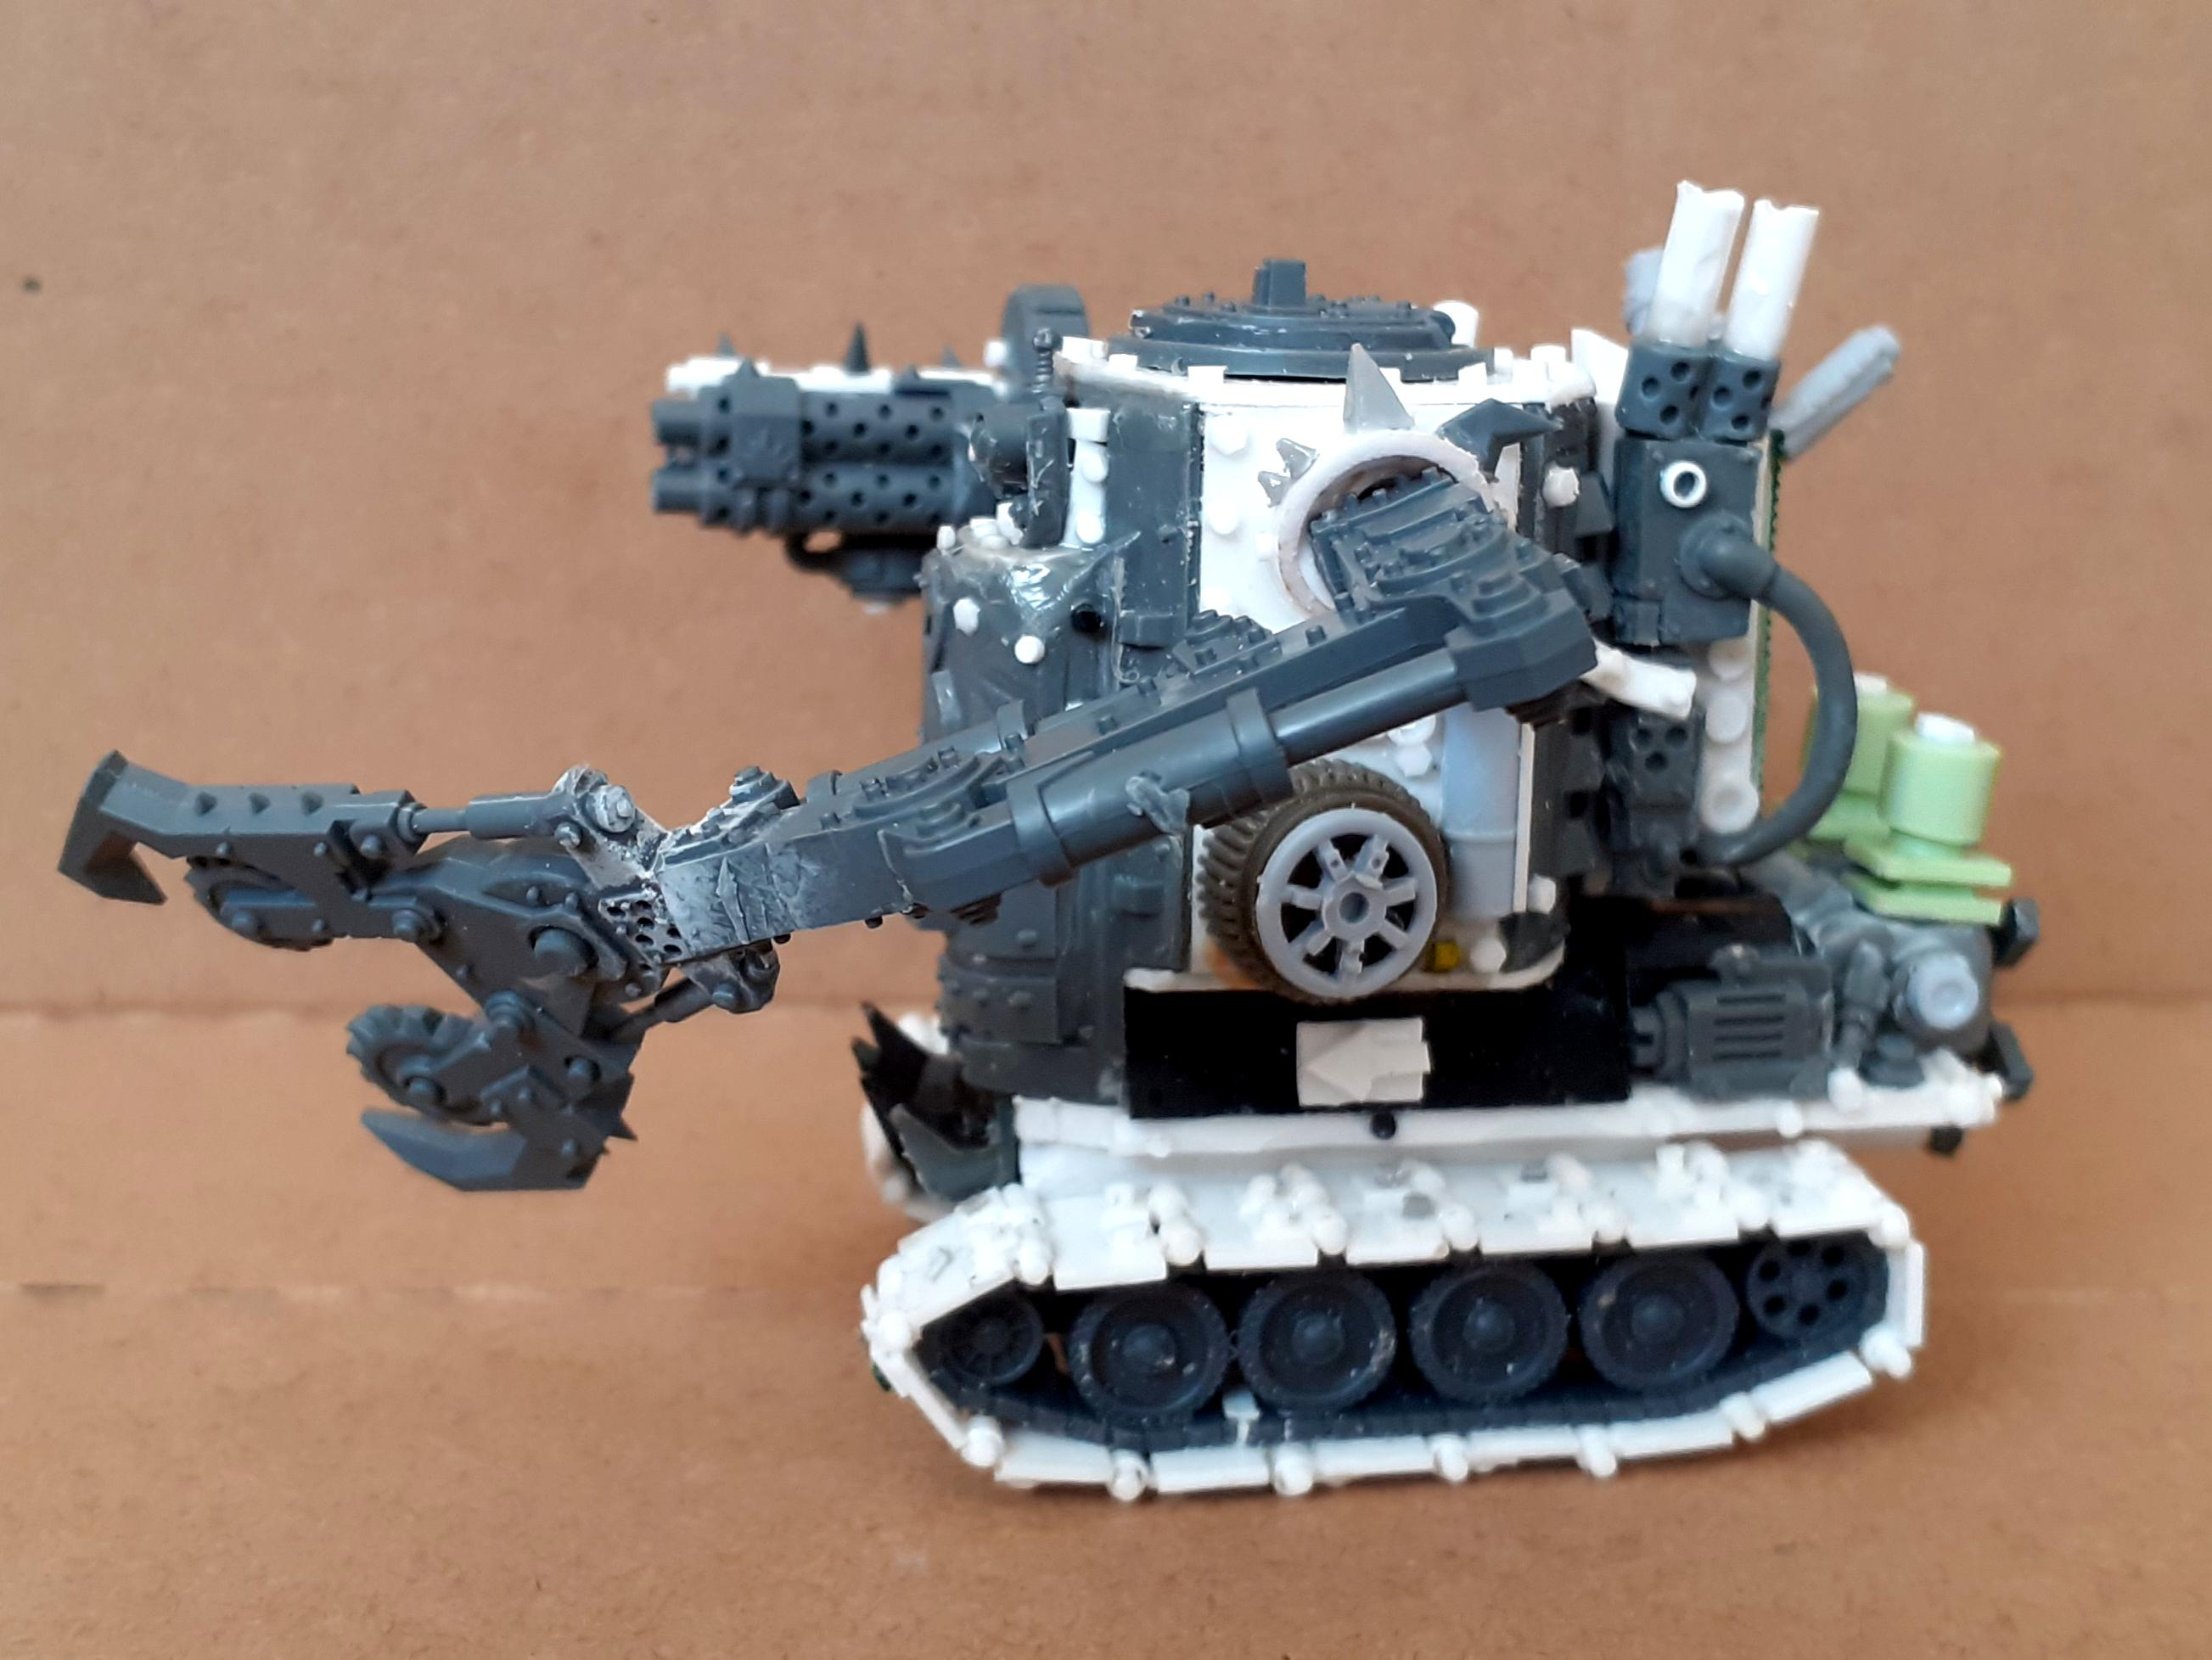 Conversion, Grot Conversion, Grot Tank, Grots, Killa Kan, Kitbash, Kitbashed, Ork Conversions, Ork Coustom Made Vehicratch Builcles, Orks, Scratch Build, Sd